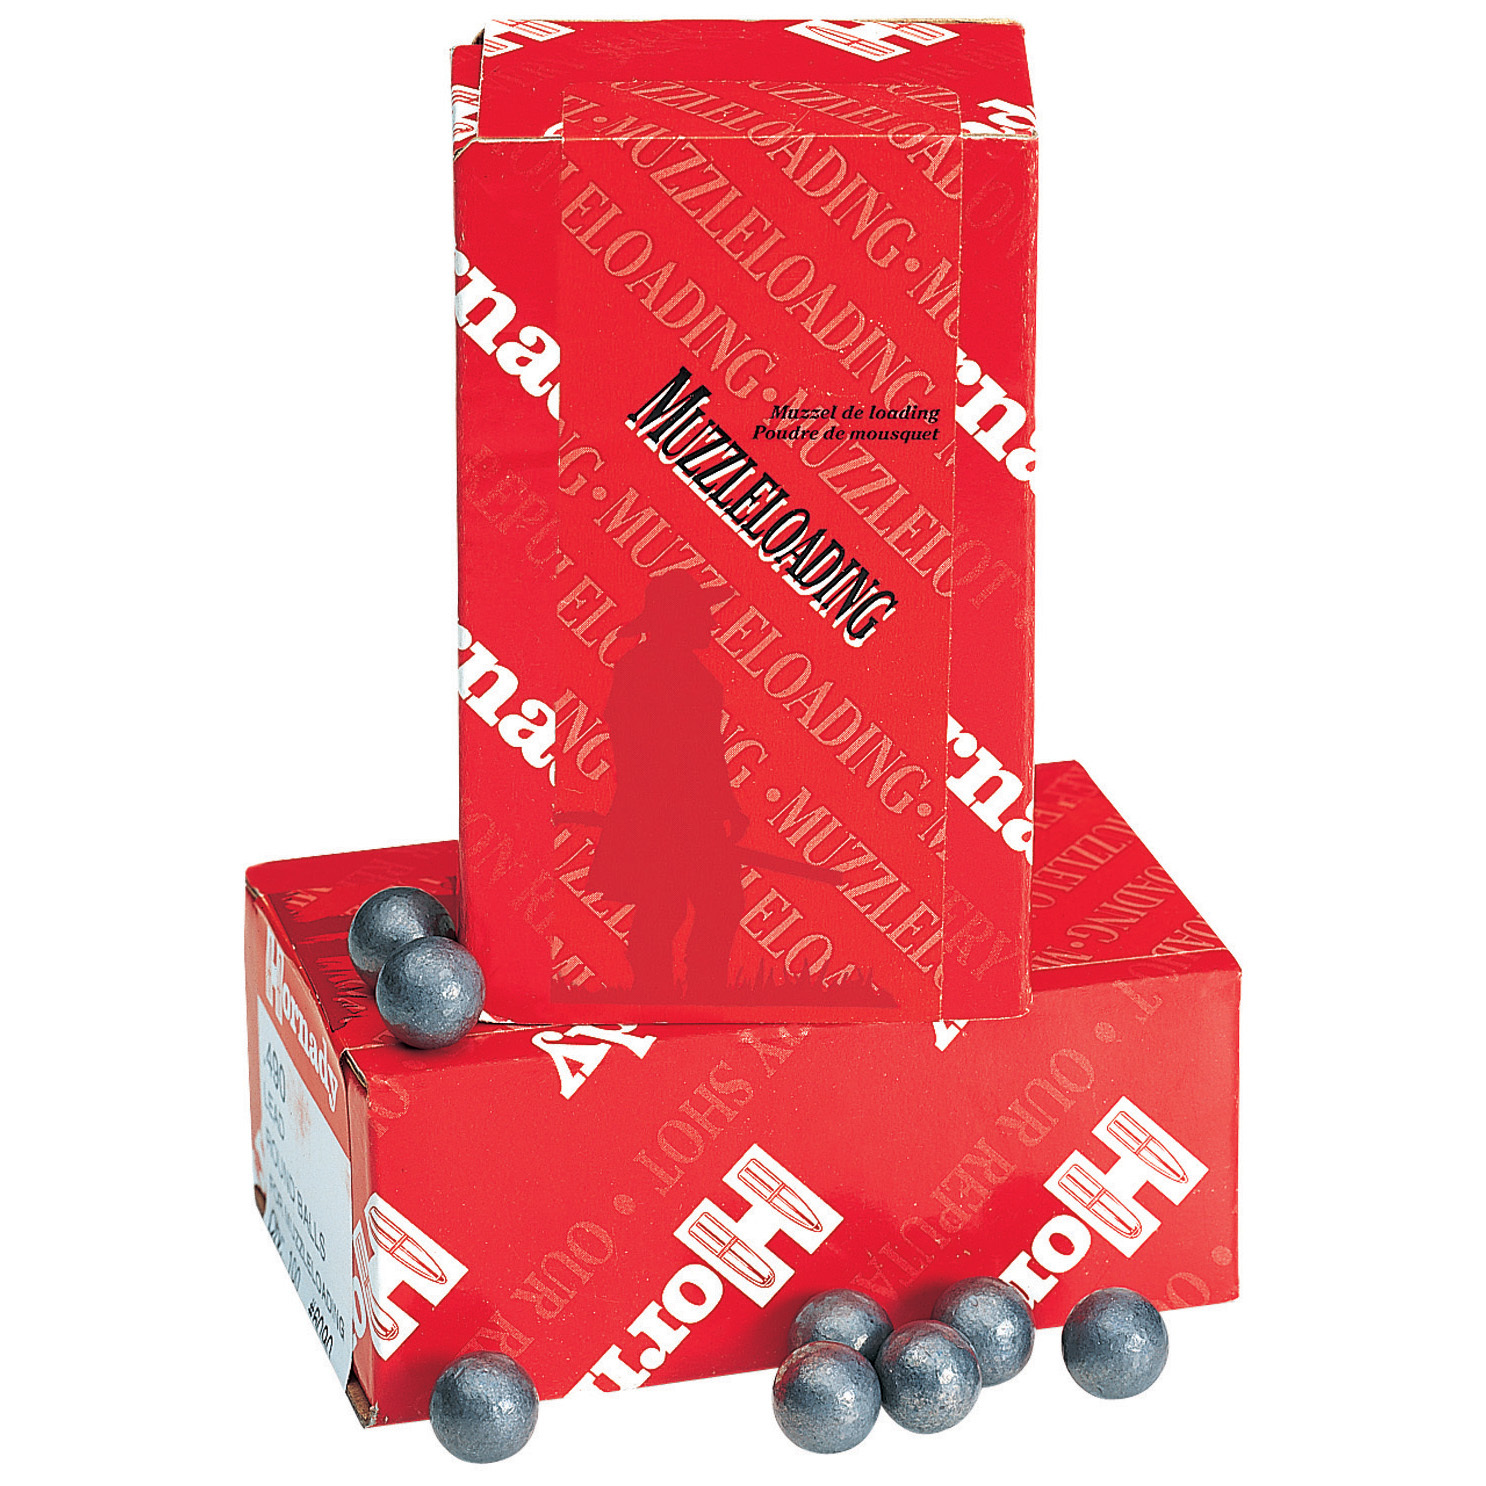 "100-Pk. of Hornady .45 Caliber .457"" Lead Balls offer incredible accuracy and consistency. Near perfect consistency and concentricity! Cold swagged from pure lead, these Hornady Lead Balls are uniform in size, weight and roundness. Their smooth, round surface assures better rotation, consistency and accuracy in the field. Features:.45 caliber .457"" diameter 100 lead balls per box. - $14.99"